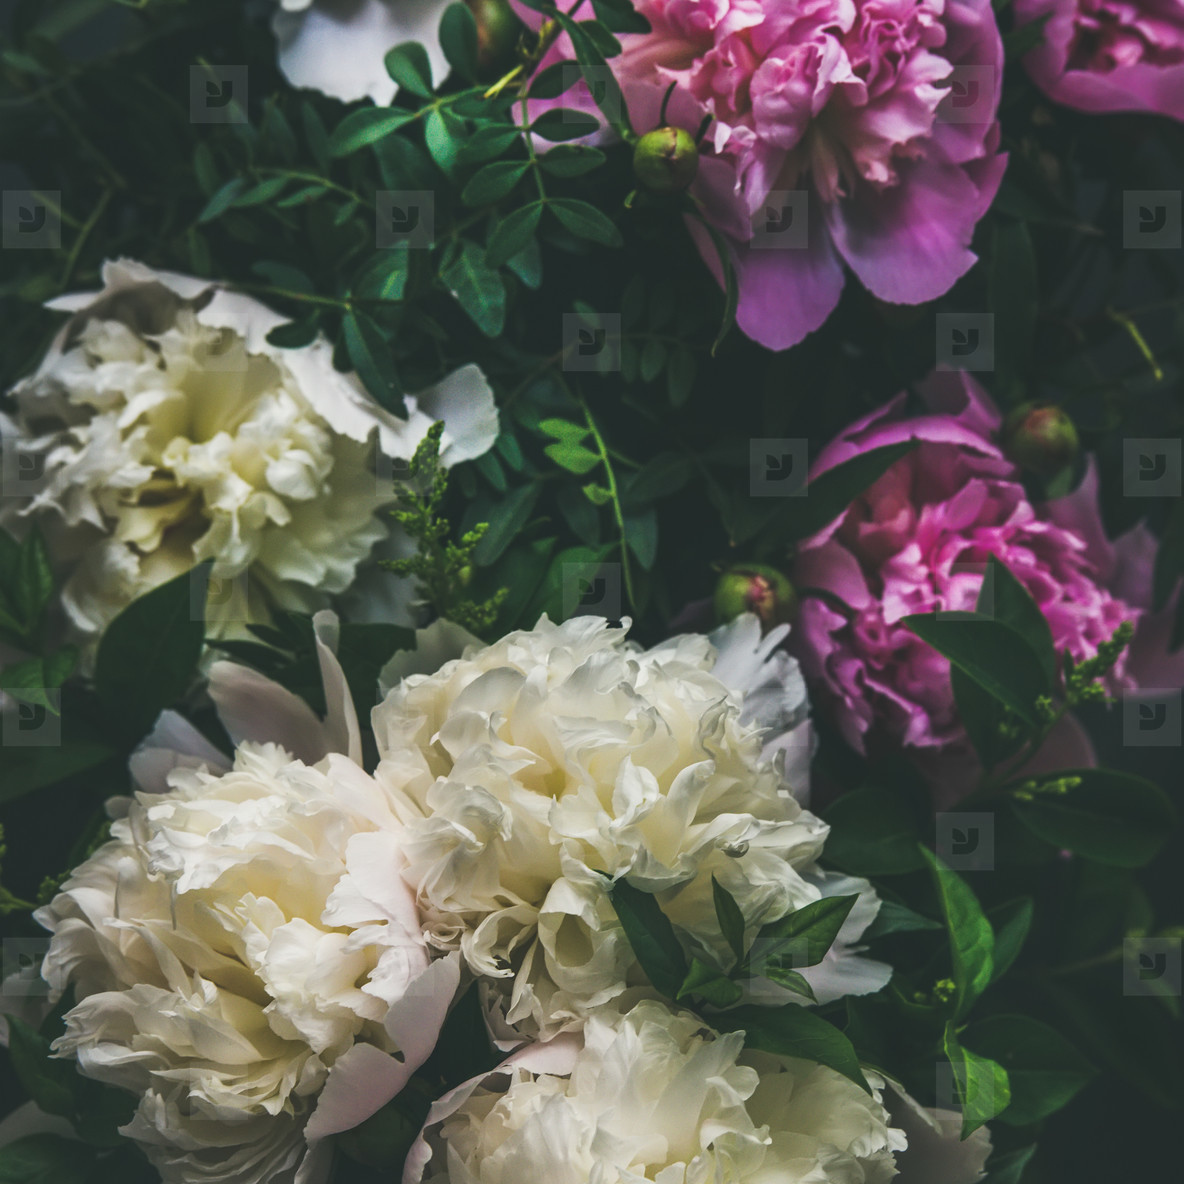 Photos White And Pink Peony Flowers Over Dark Background Square Crop Youworkforthem